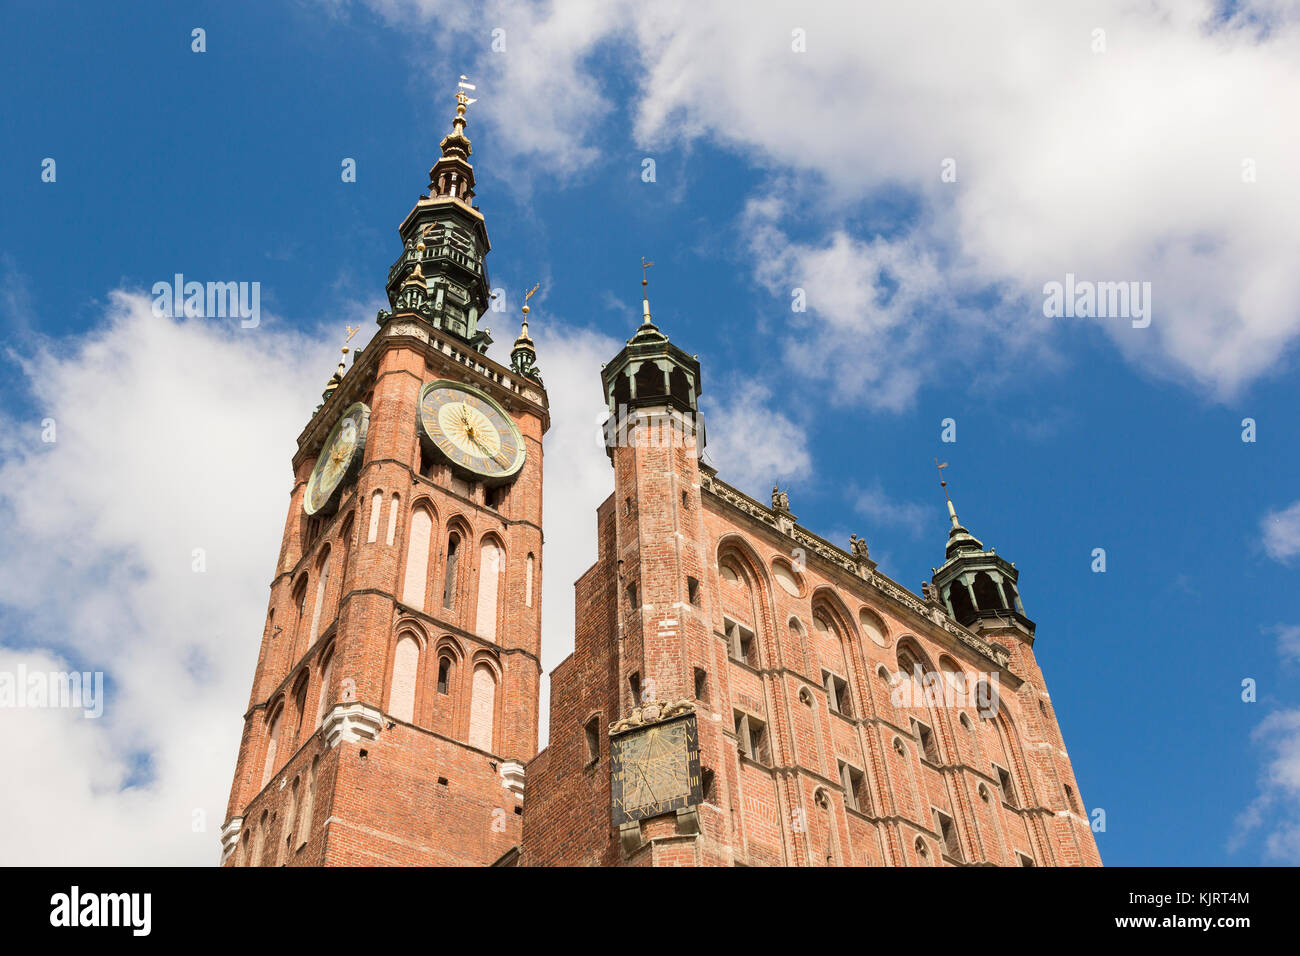 Tower of Main City hall in the old city of Danzig, Poland Stock Photo